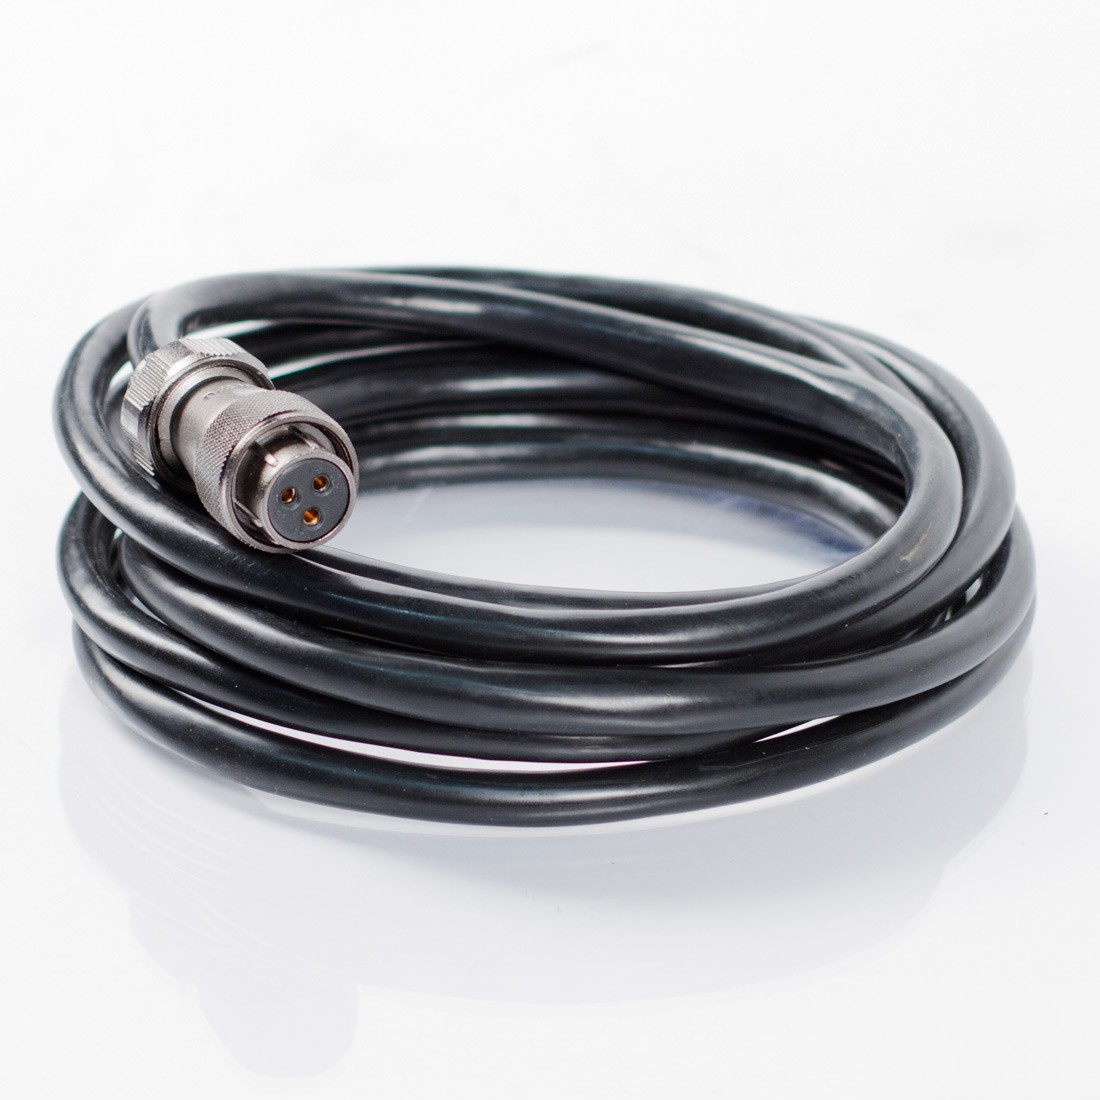 Elation EVLED6PCEX 6 Foot Power Extension Cable 3-Pin Male to 3-Pin Female